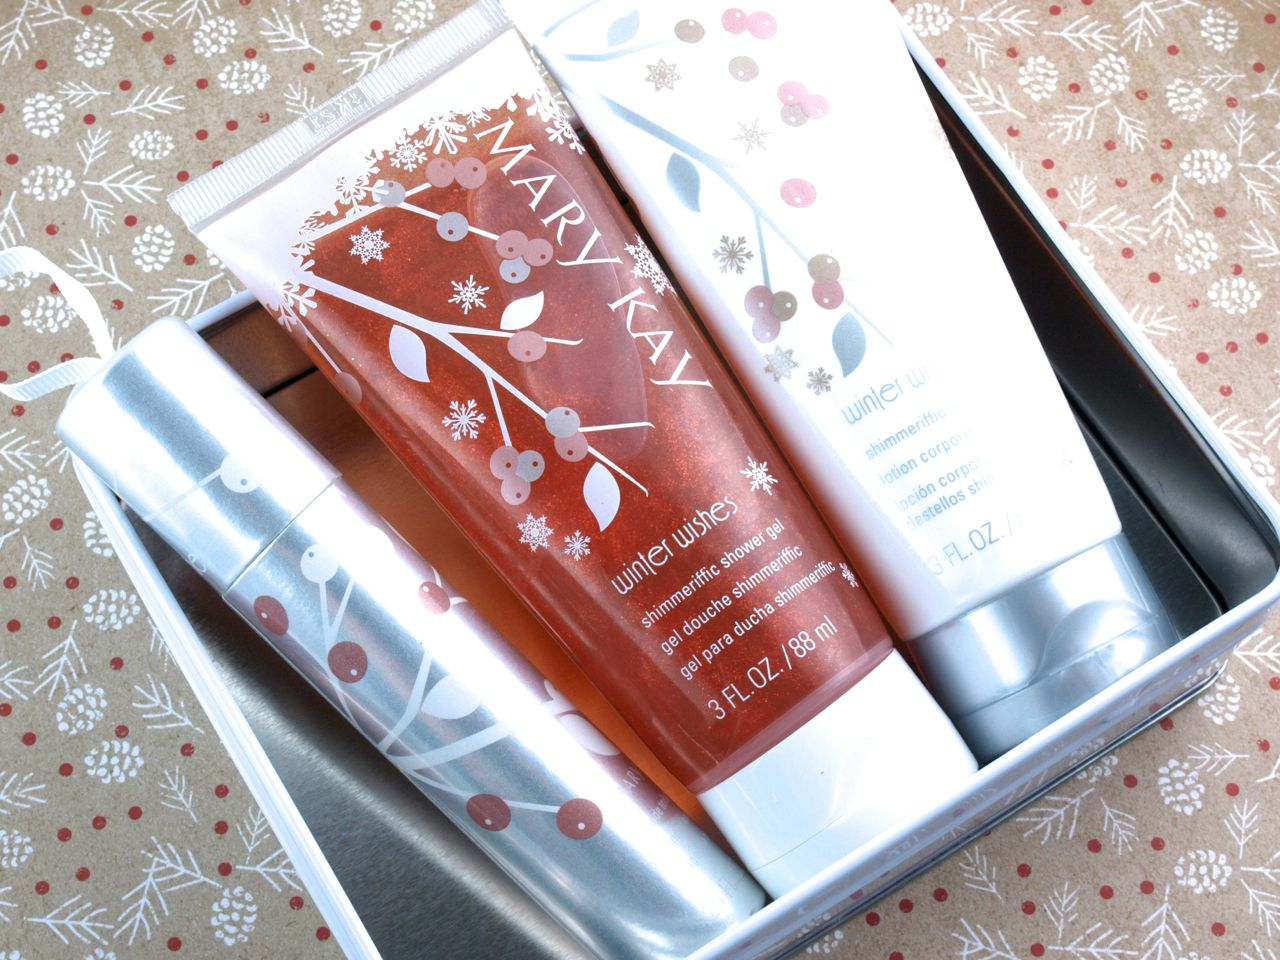 Mary Kay Holiday 2014 Winter Wishes Gift Set & Fragrance Wand: Review